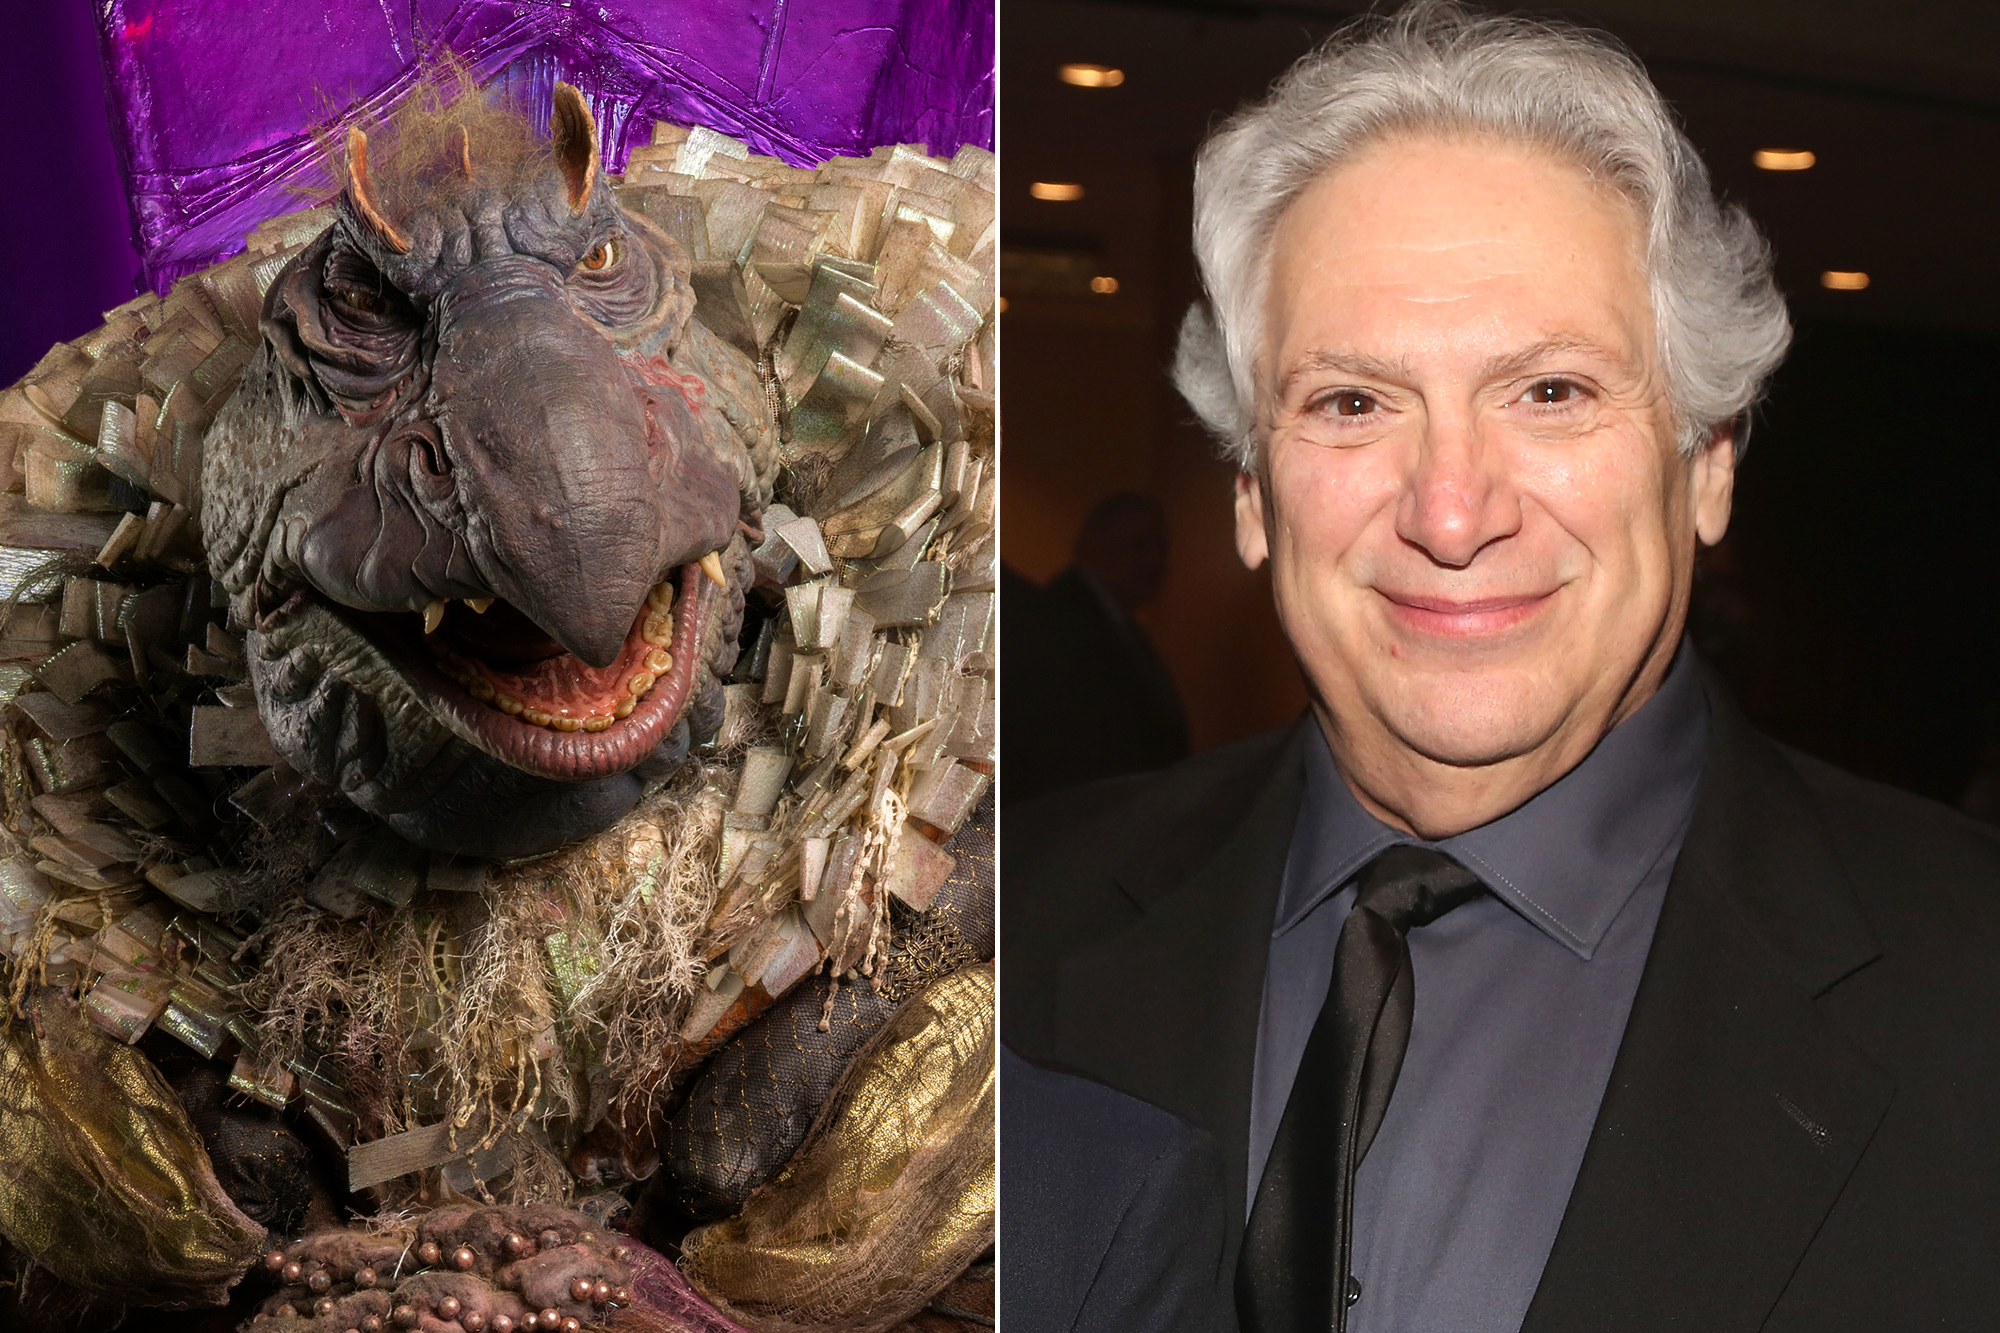 Harvey Fierstein as The Gourmand